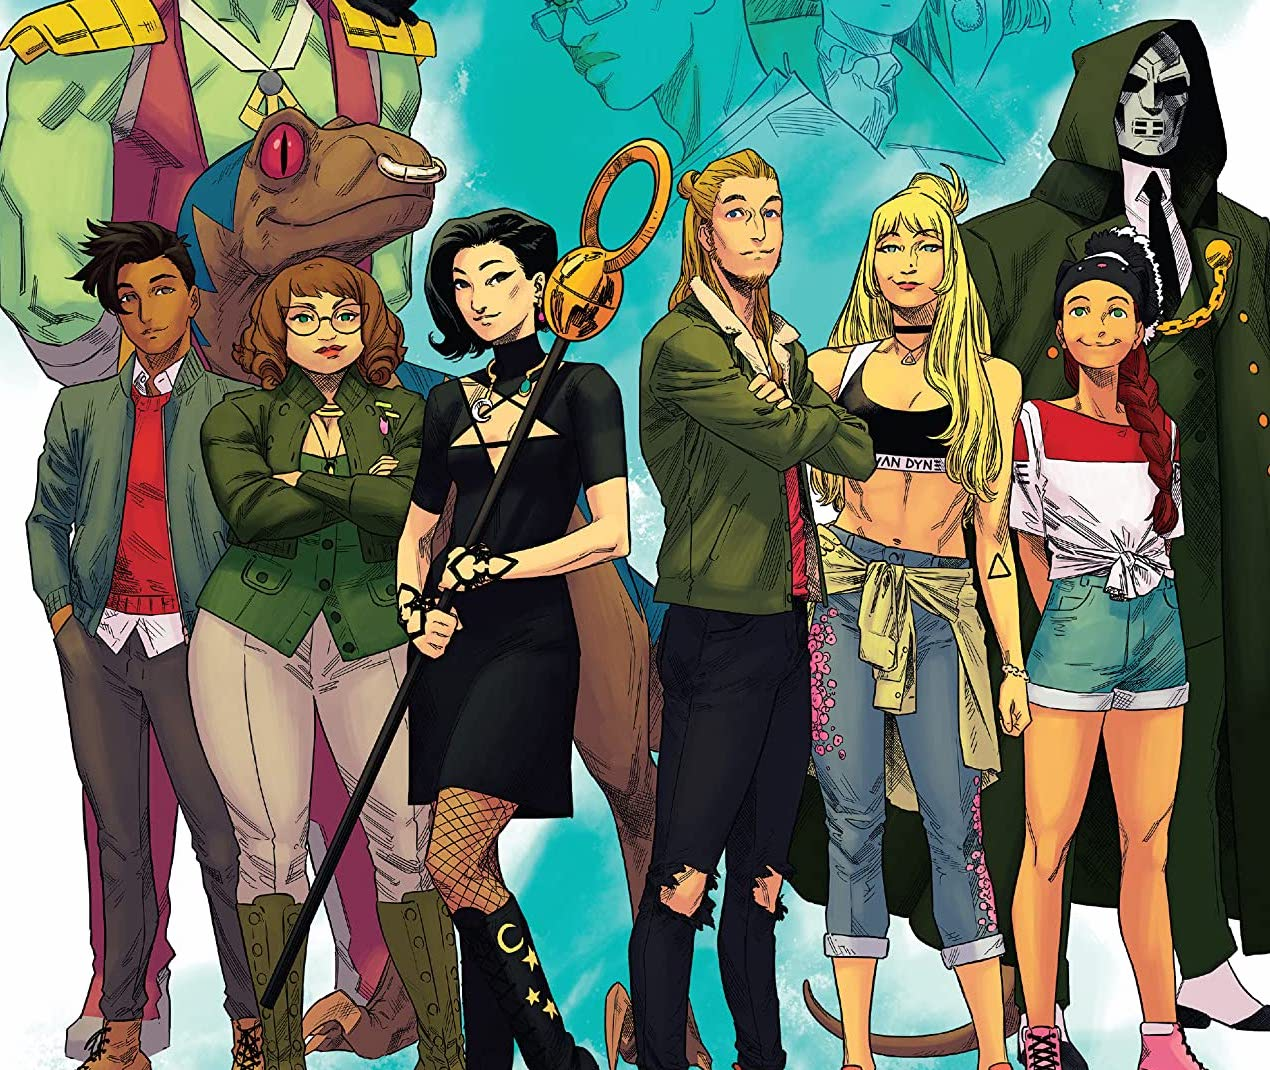 'Runaways' #38 ends on an abrupt but emotional note